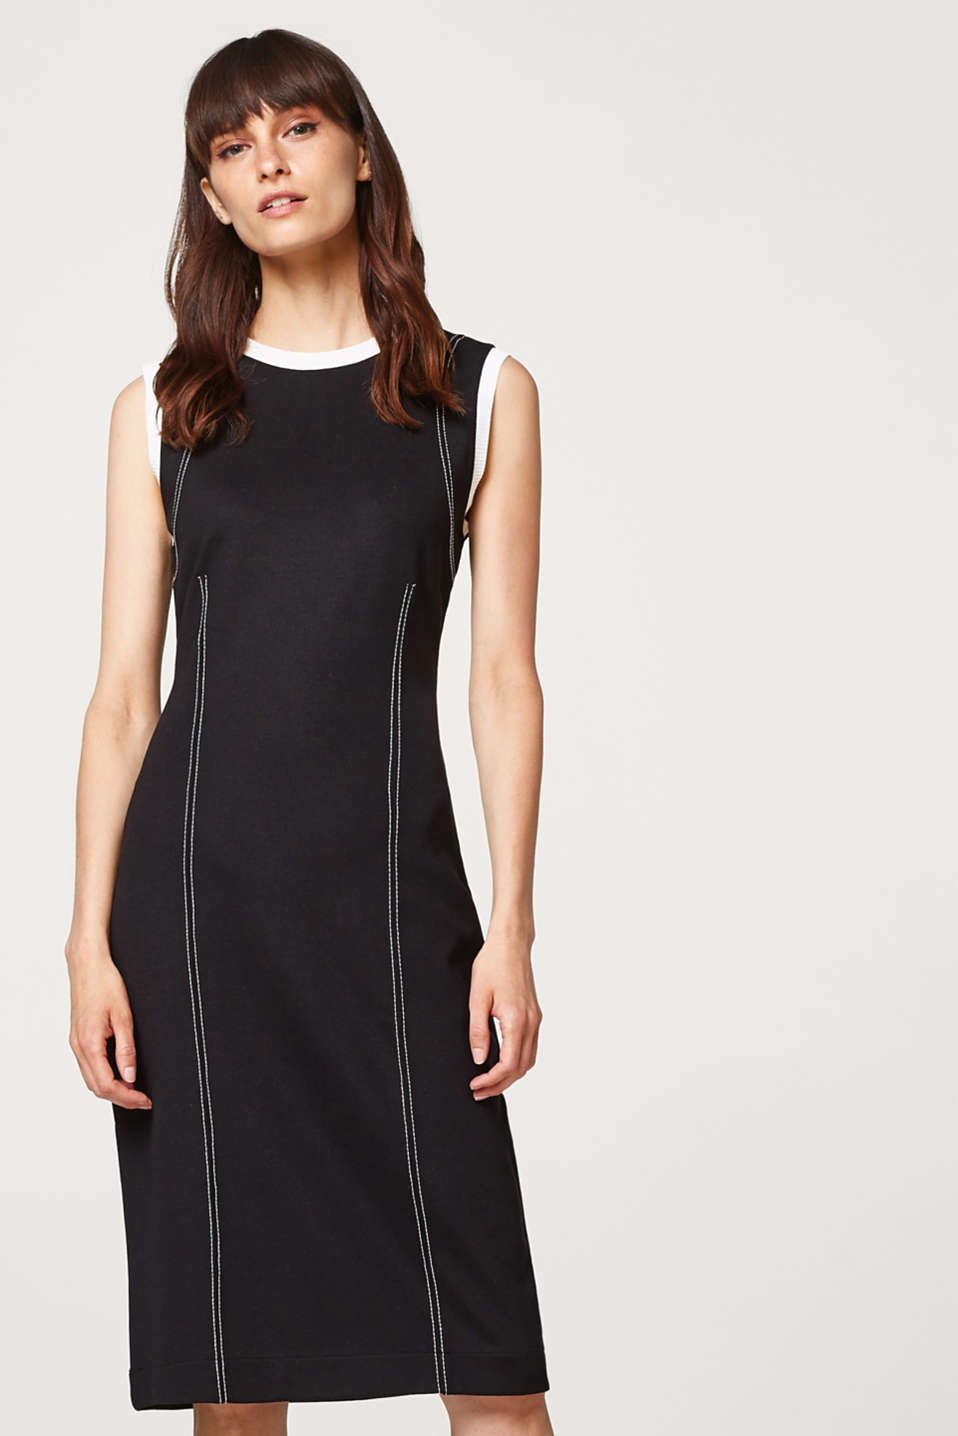 Esprit - Shift dress in stretch jersey with contrast details